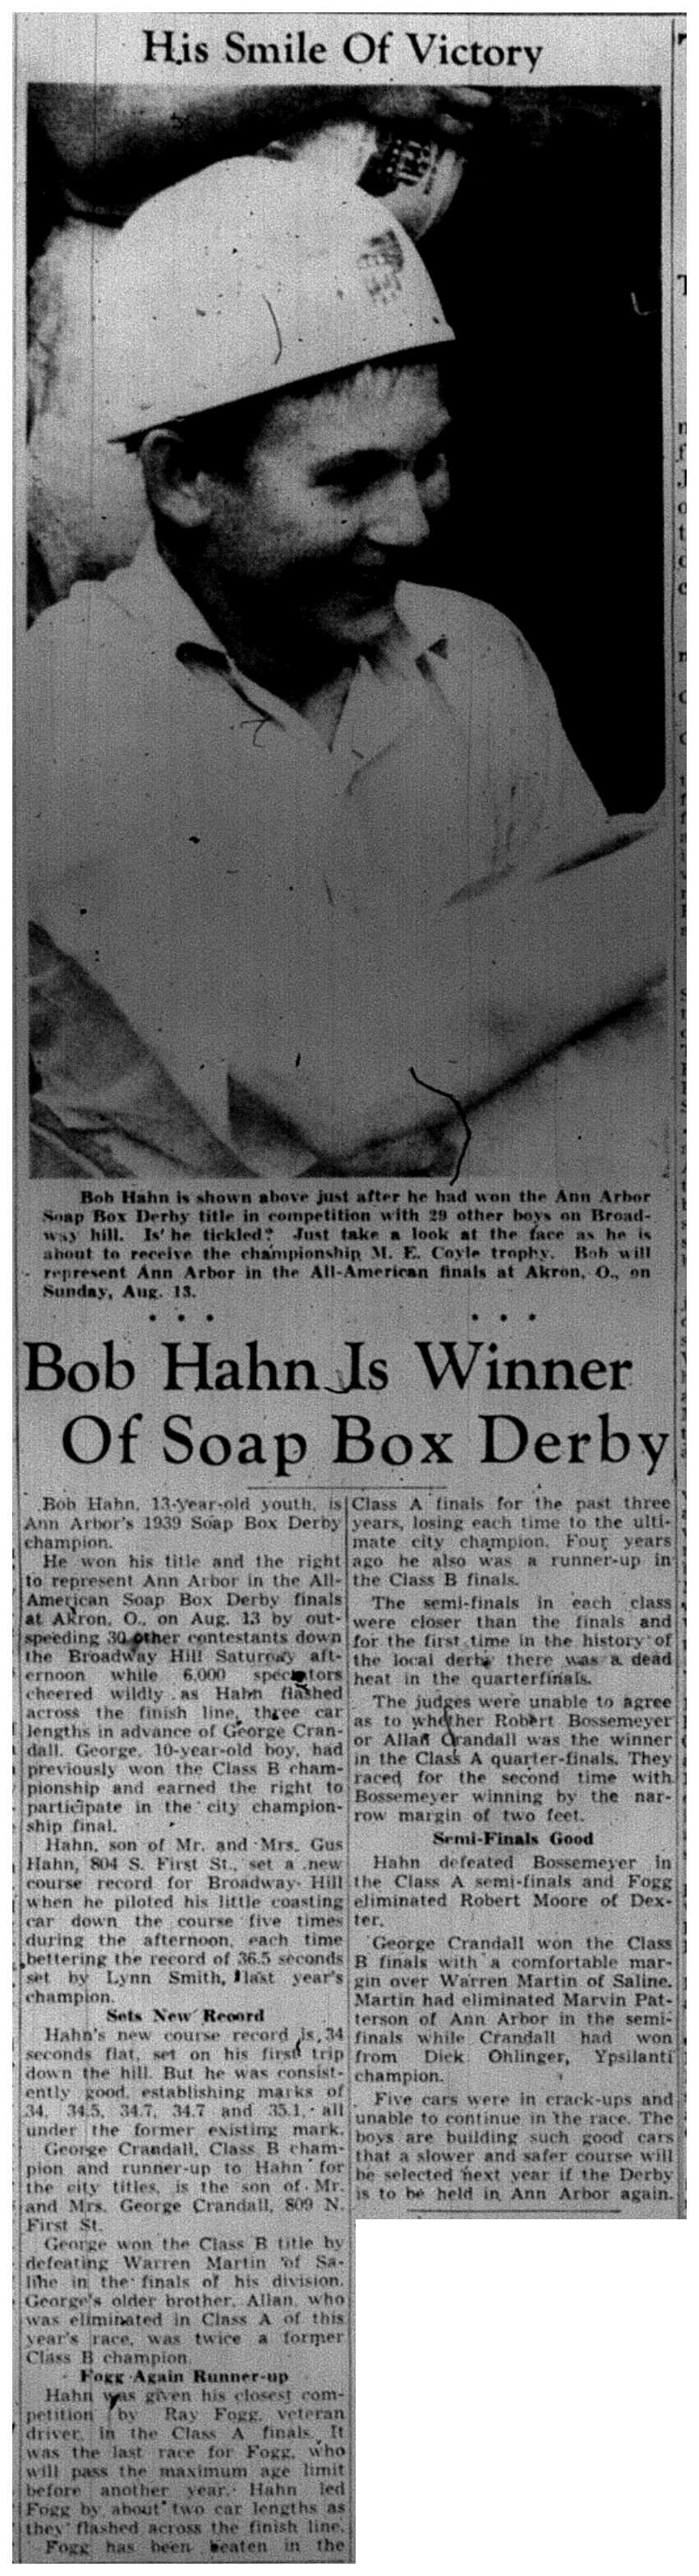 Bob Hahn Is Winner Of Soap Box Derby image